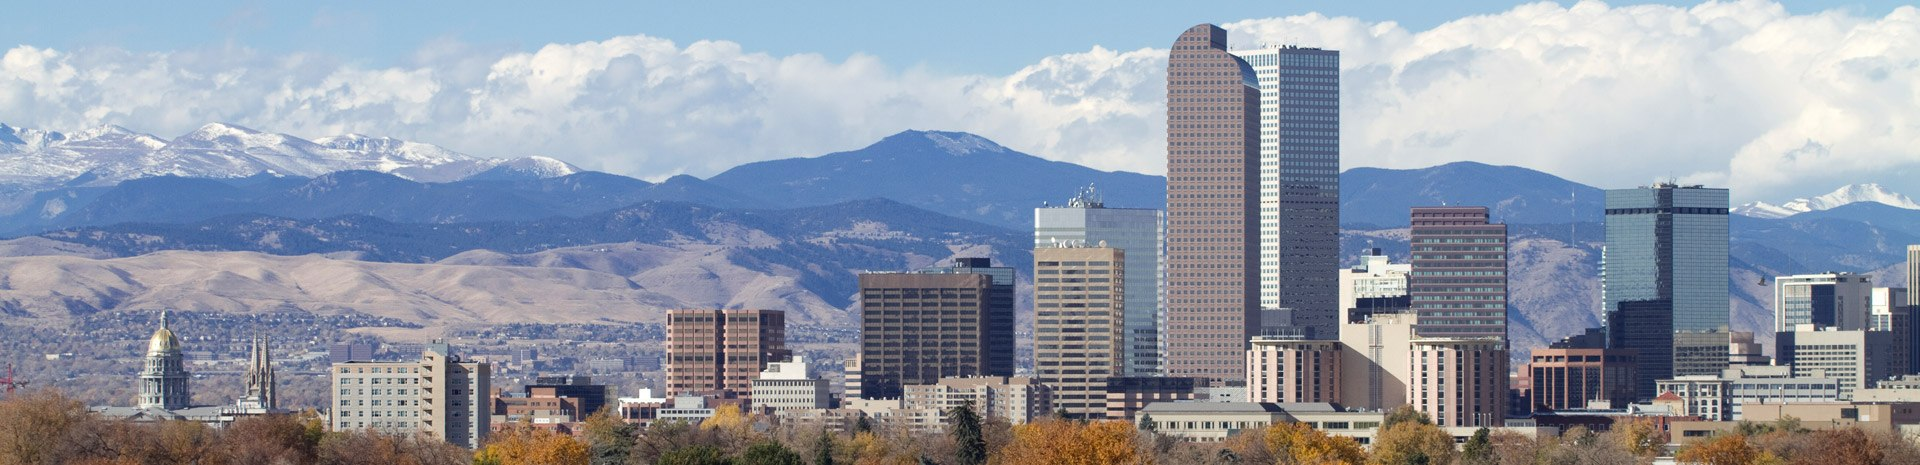 Criminal Defense Lawyer Denver